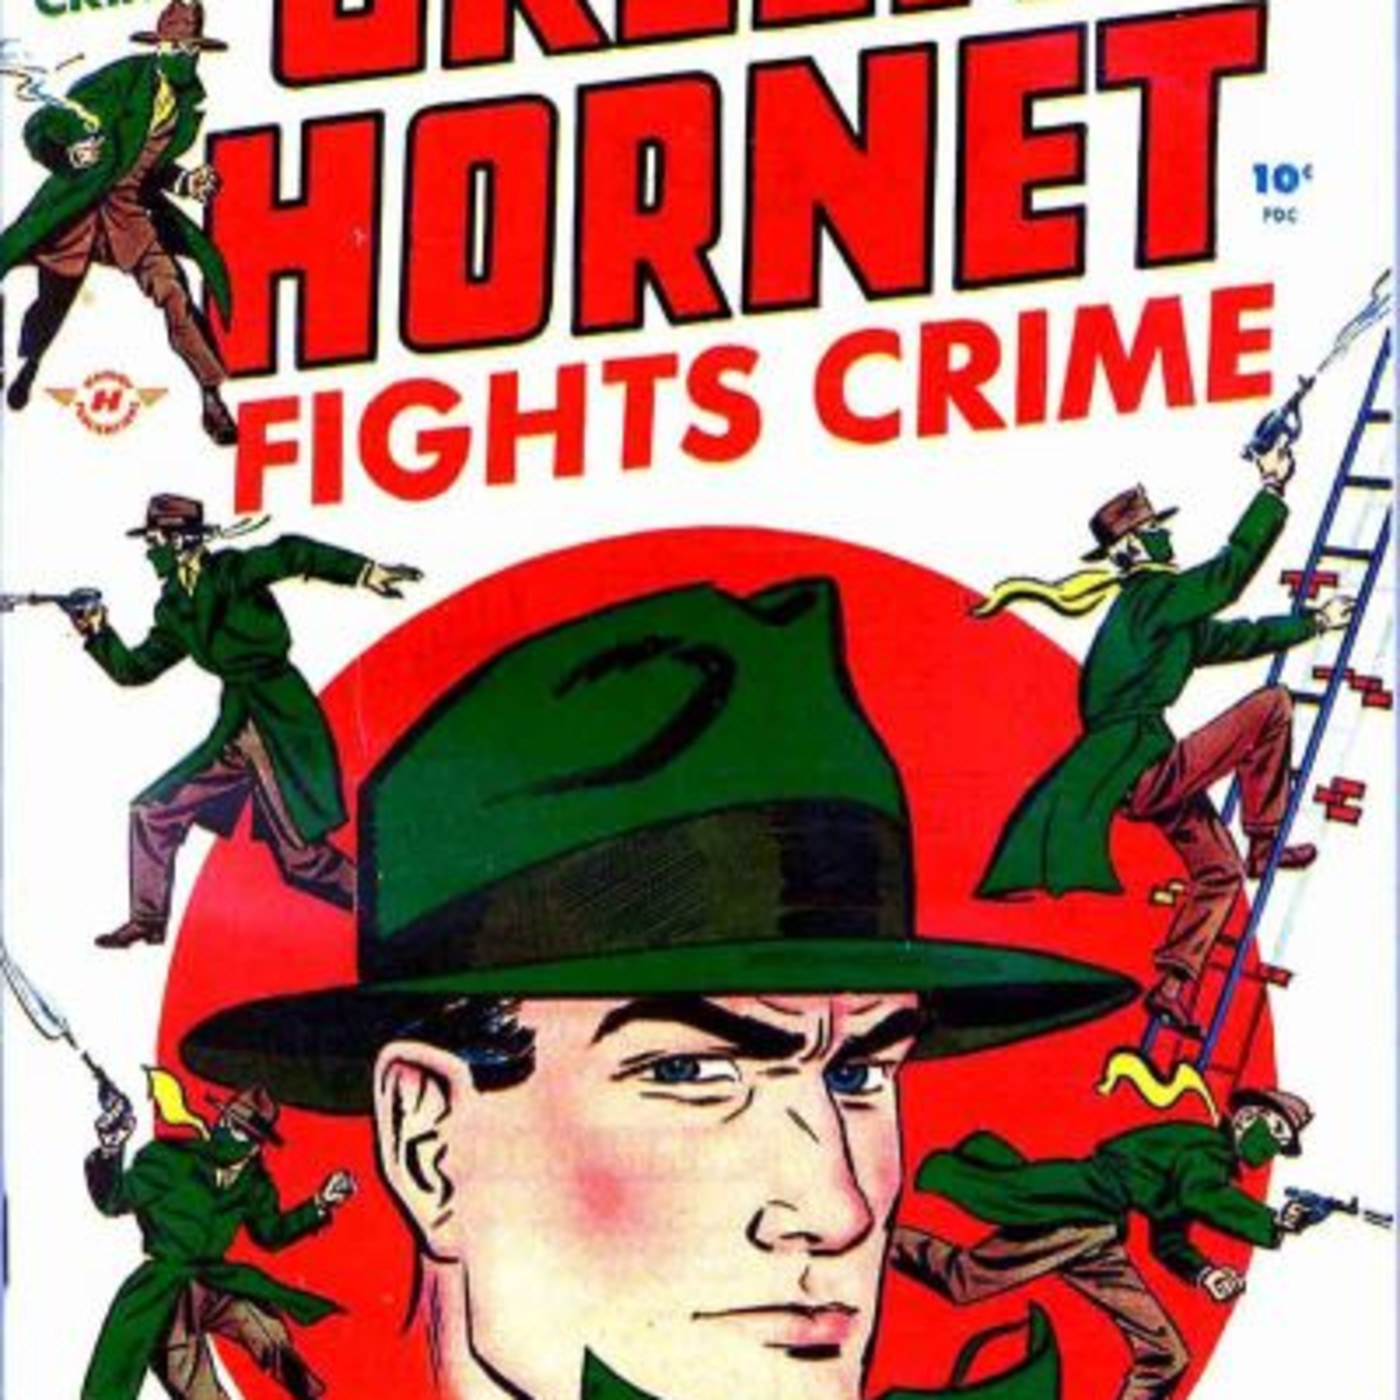 The Green Hornet - 00 - 451122 Superhighway Robbery.mp